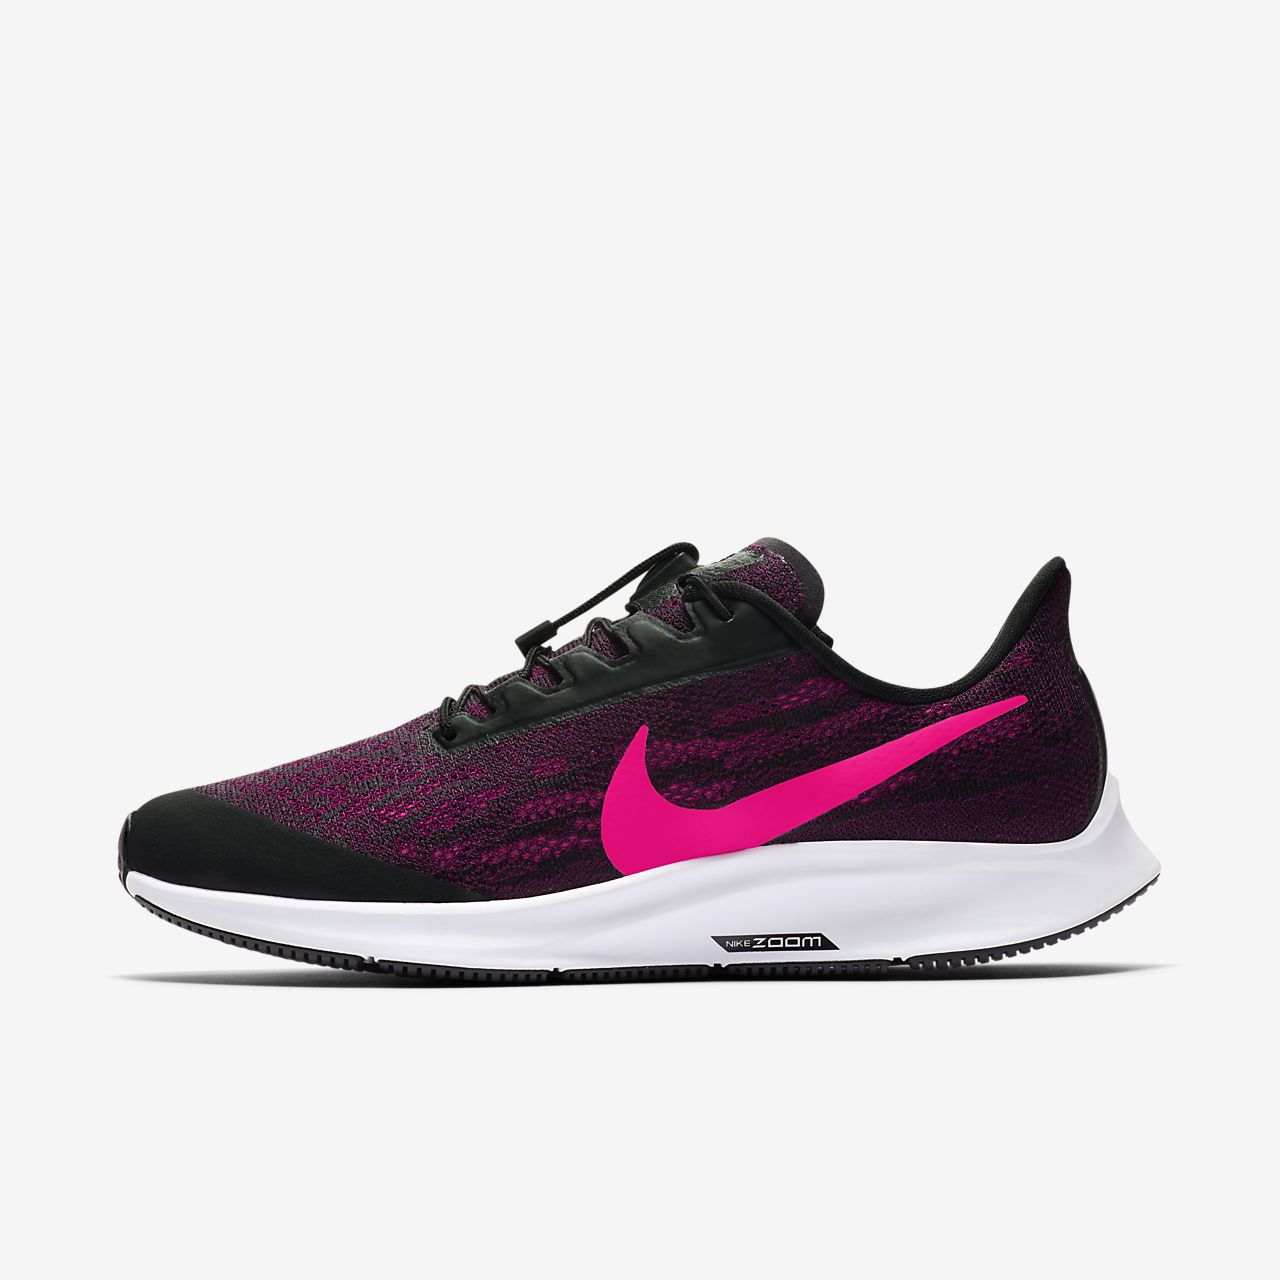 Chaussure de running Nike Air Zoom Pegasus 36 FlyEase pour Femme